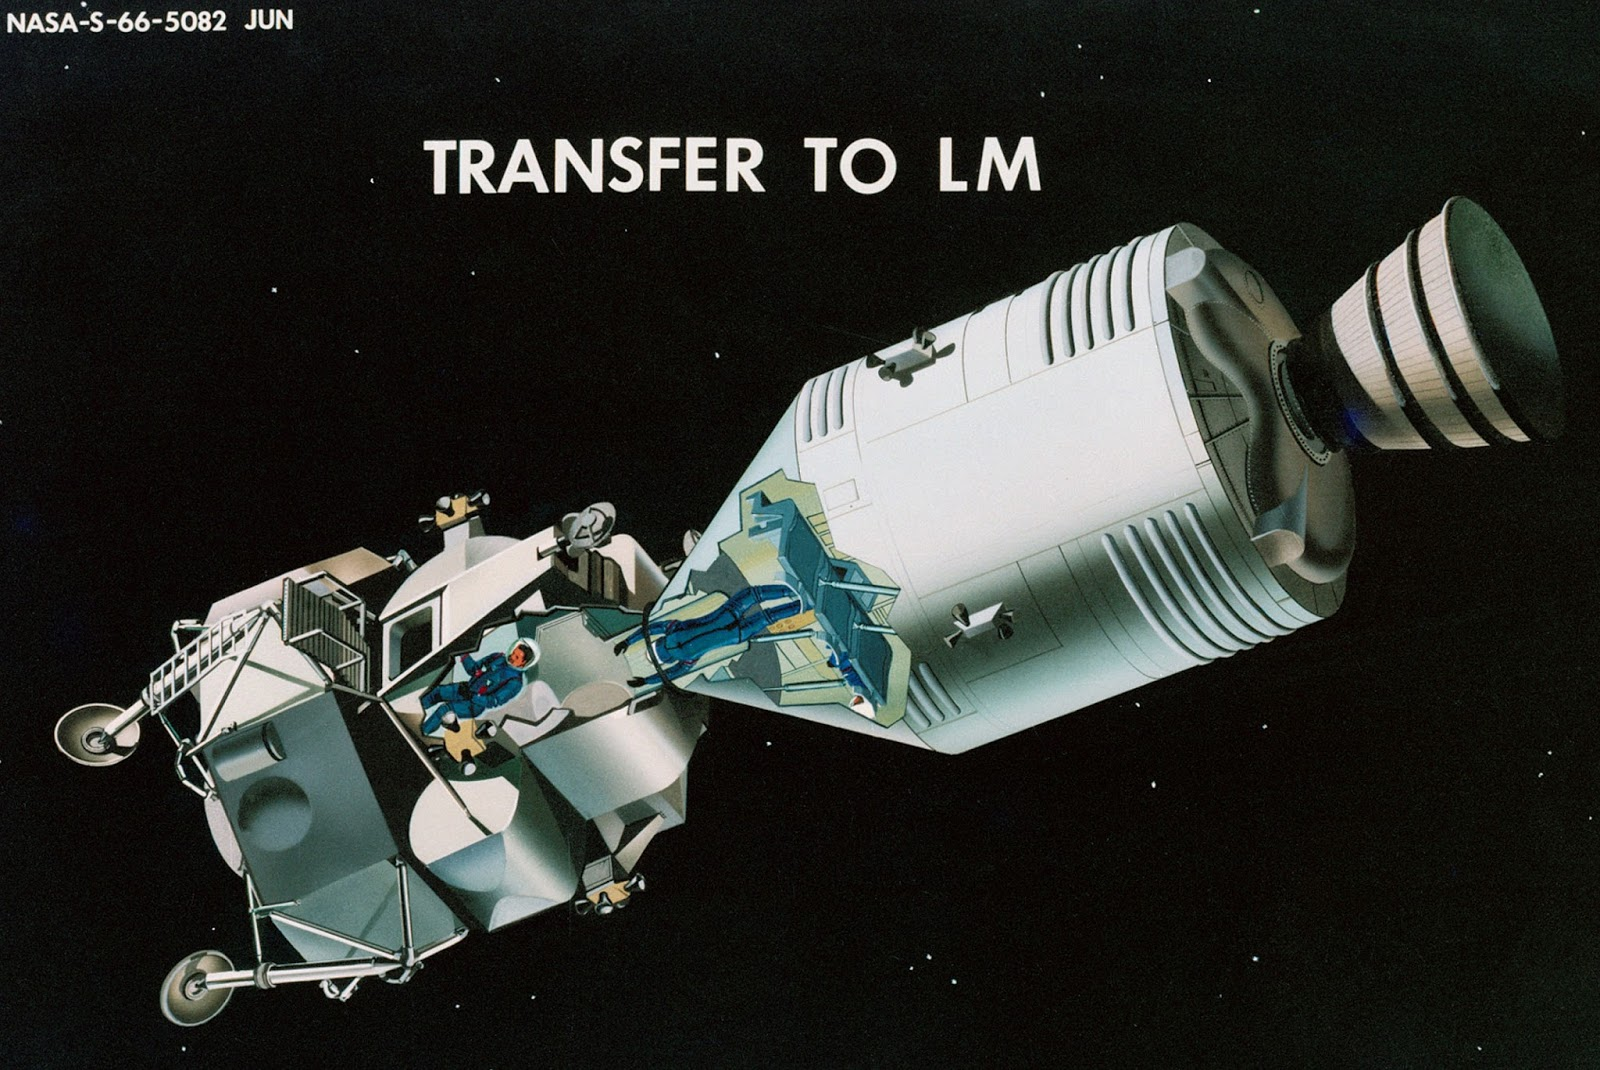 nasa apollo spacecraft command and service module news reference - photo #22